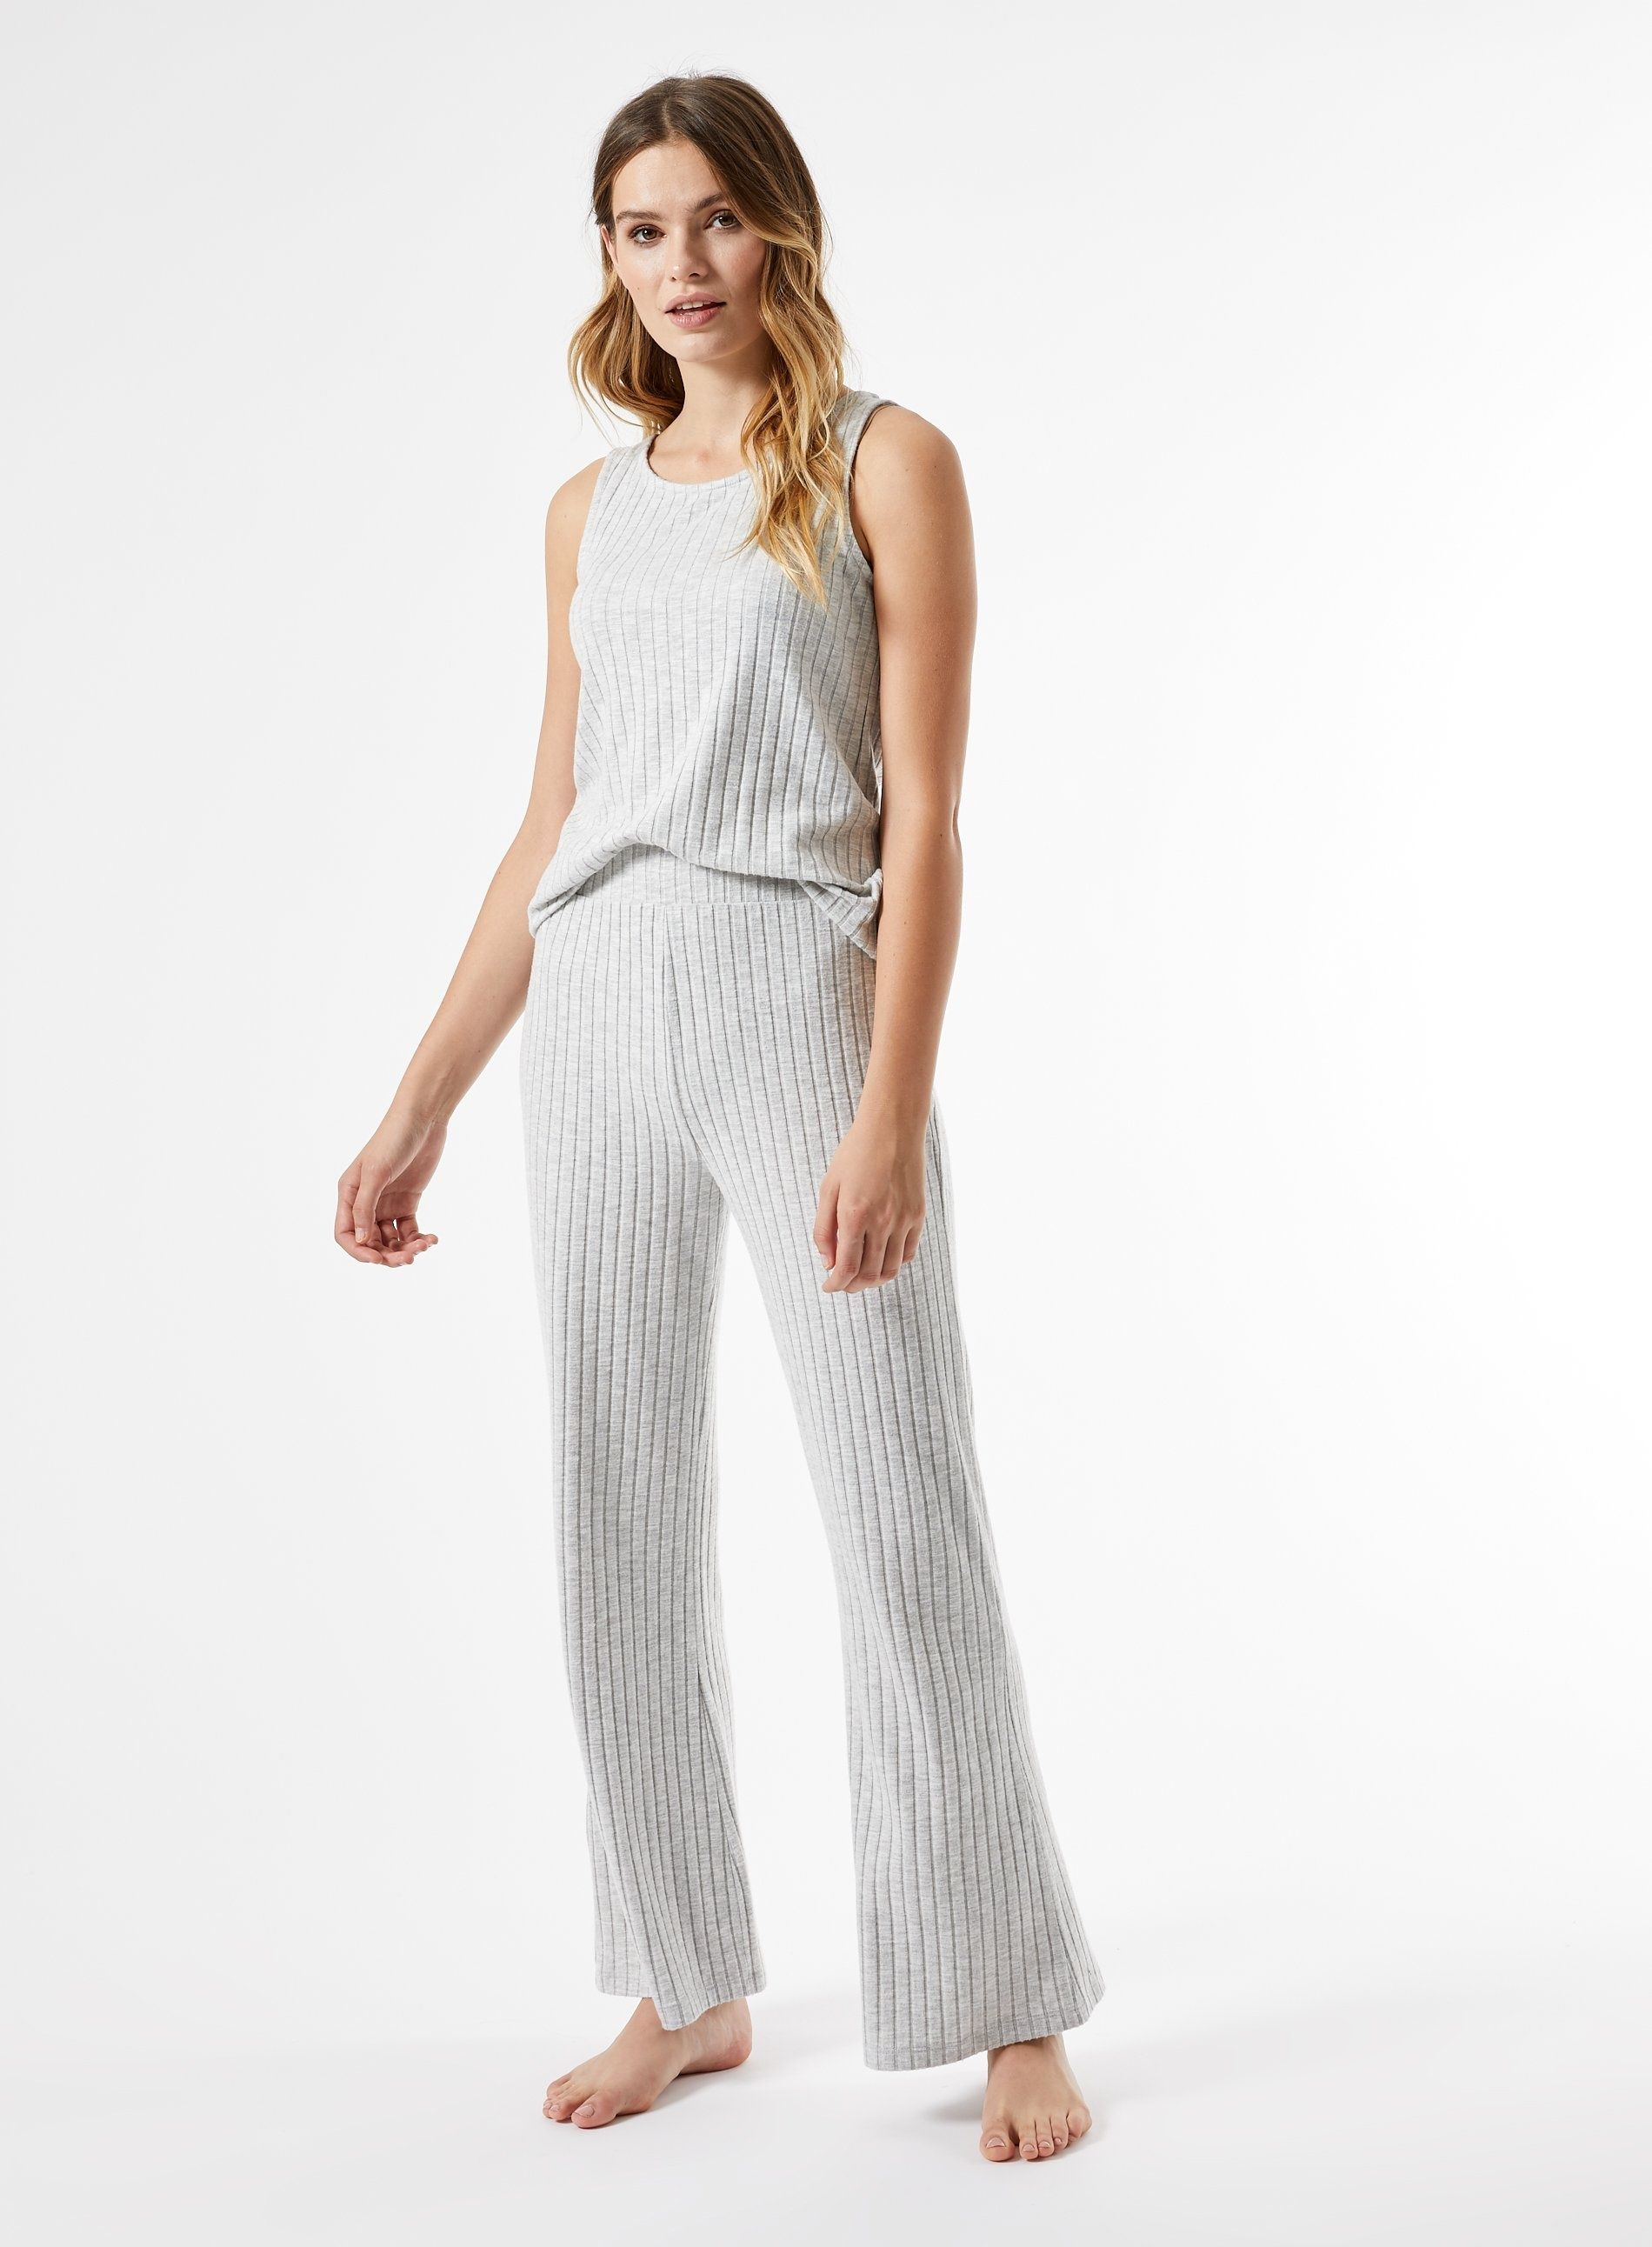 Dorothy Perkins Womens Grey Ribbed Wide Leg Trousers Flared Pants Bottoms